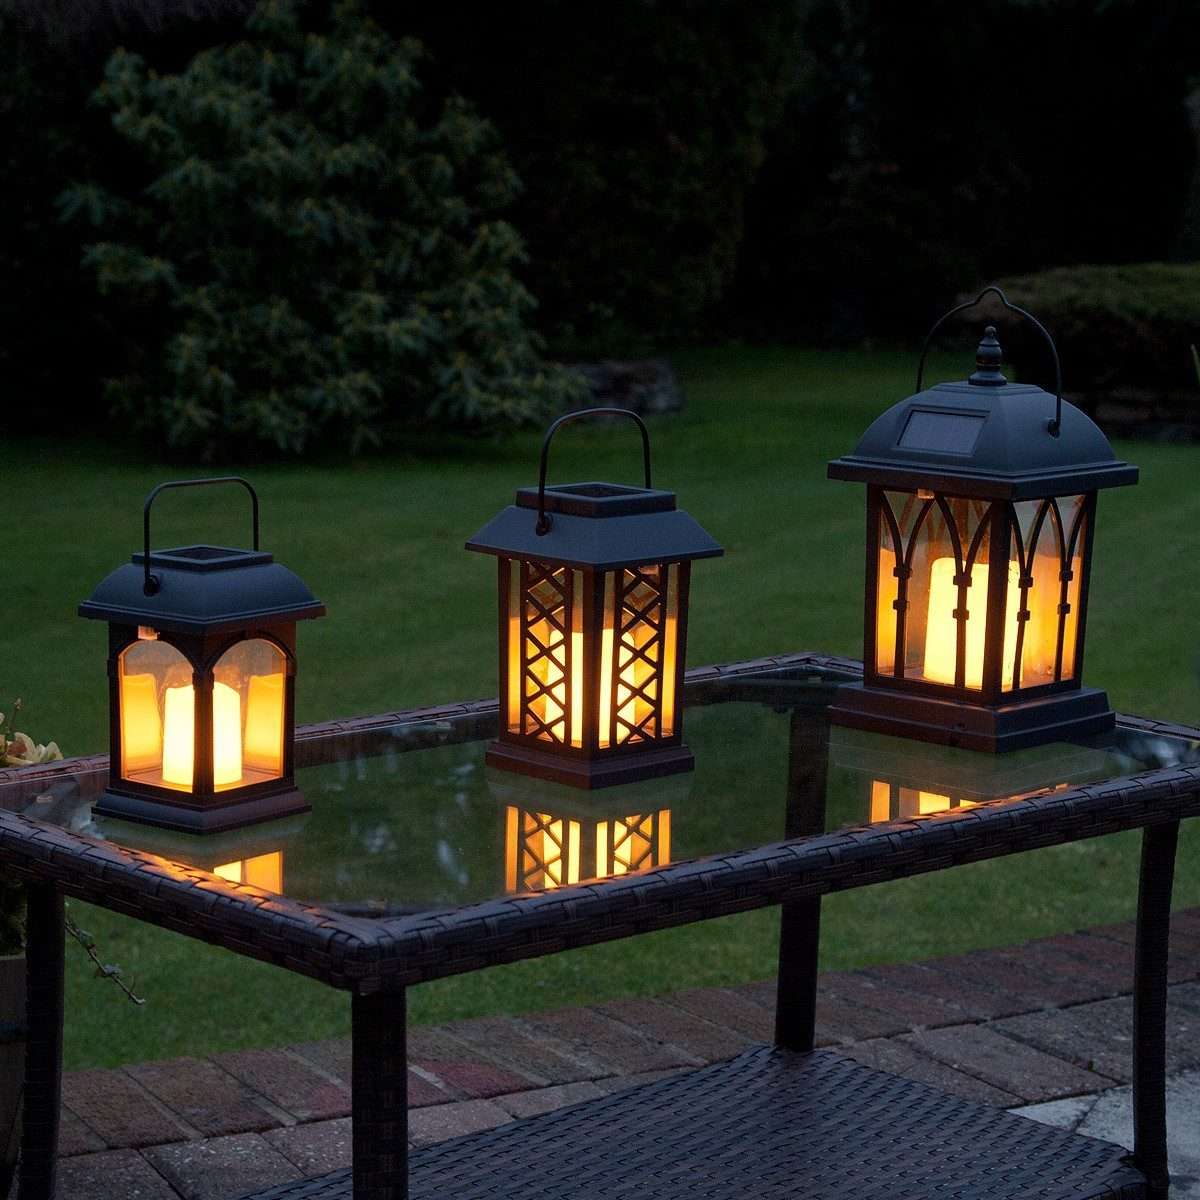 Solar Garden Light Lantern: Solar Flickering Candle Lantern, Amber LED, 3 Pack